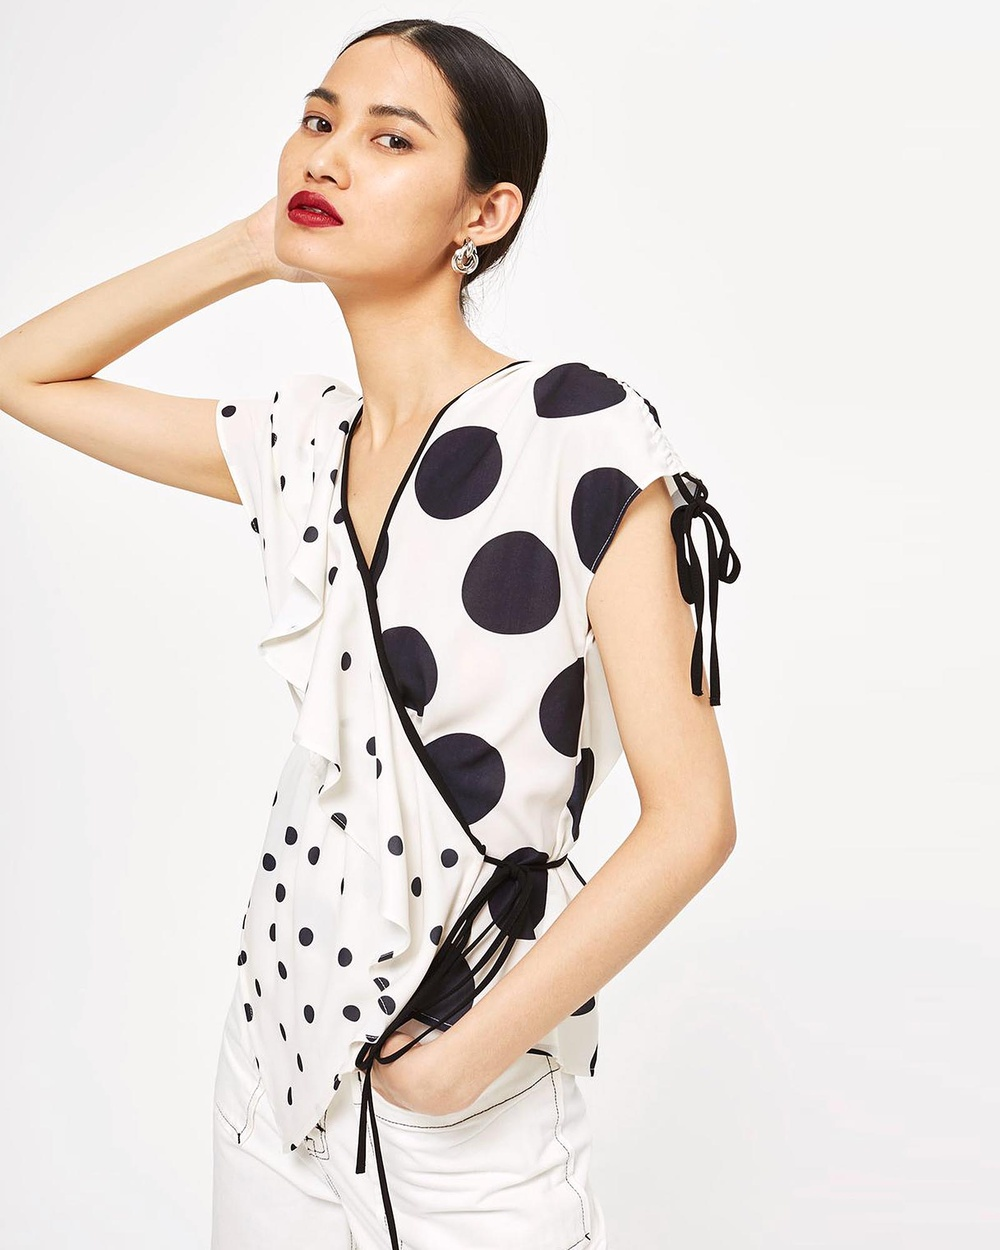 TOPSHOP Mixed Spotted Wrap Top Tops Monochrome Mixed Spotted Wrap Top